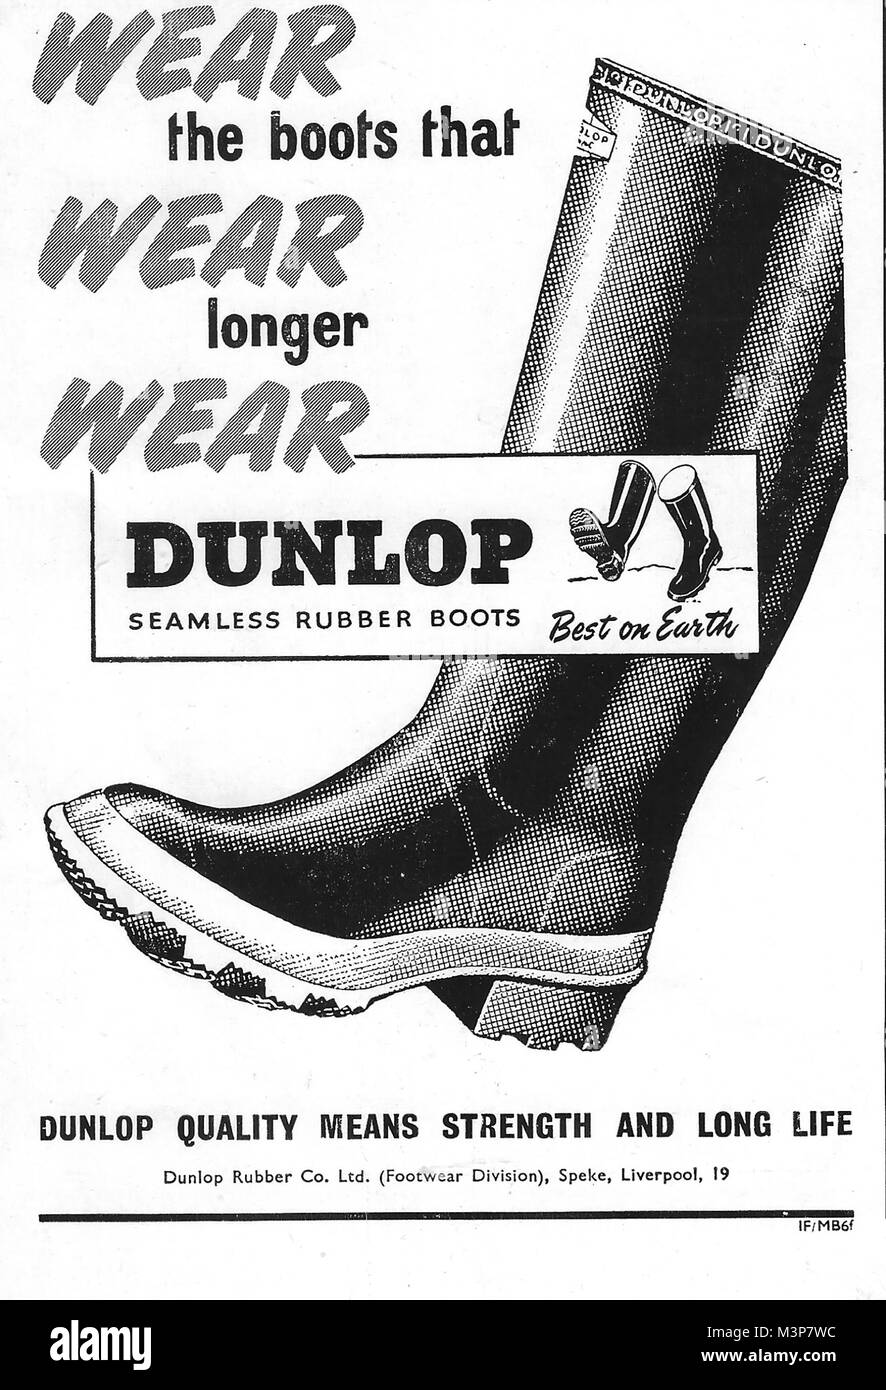 a397a9a384e7 Dunlop rubber boots advert, advertising in Country Life magazine UK 1951 -  Stock Image